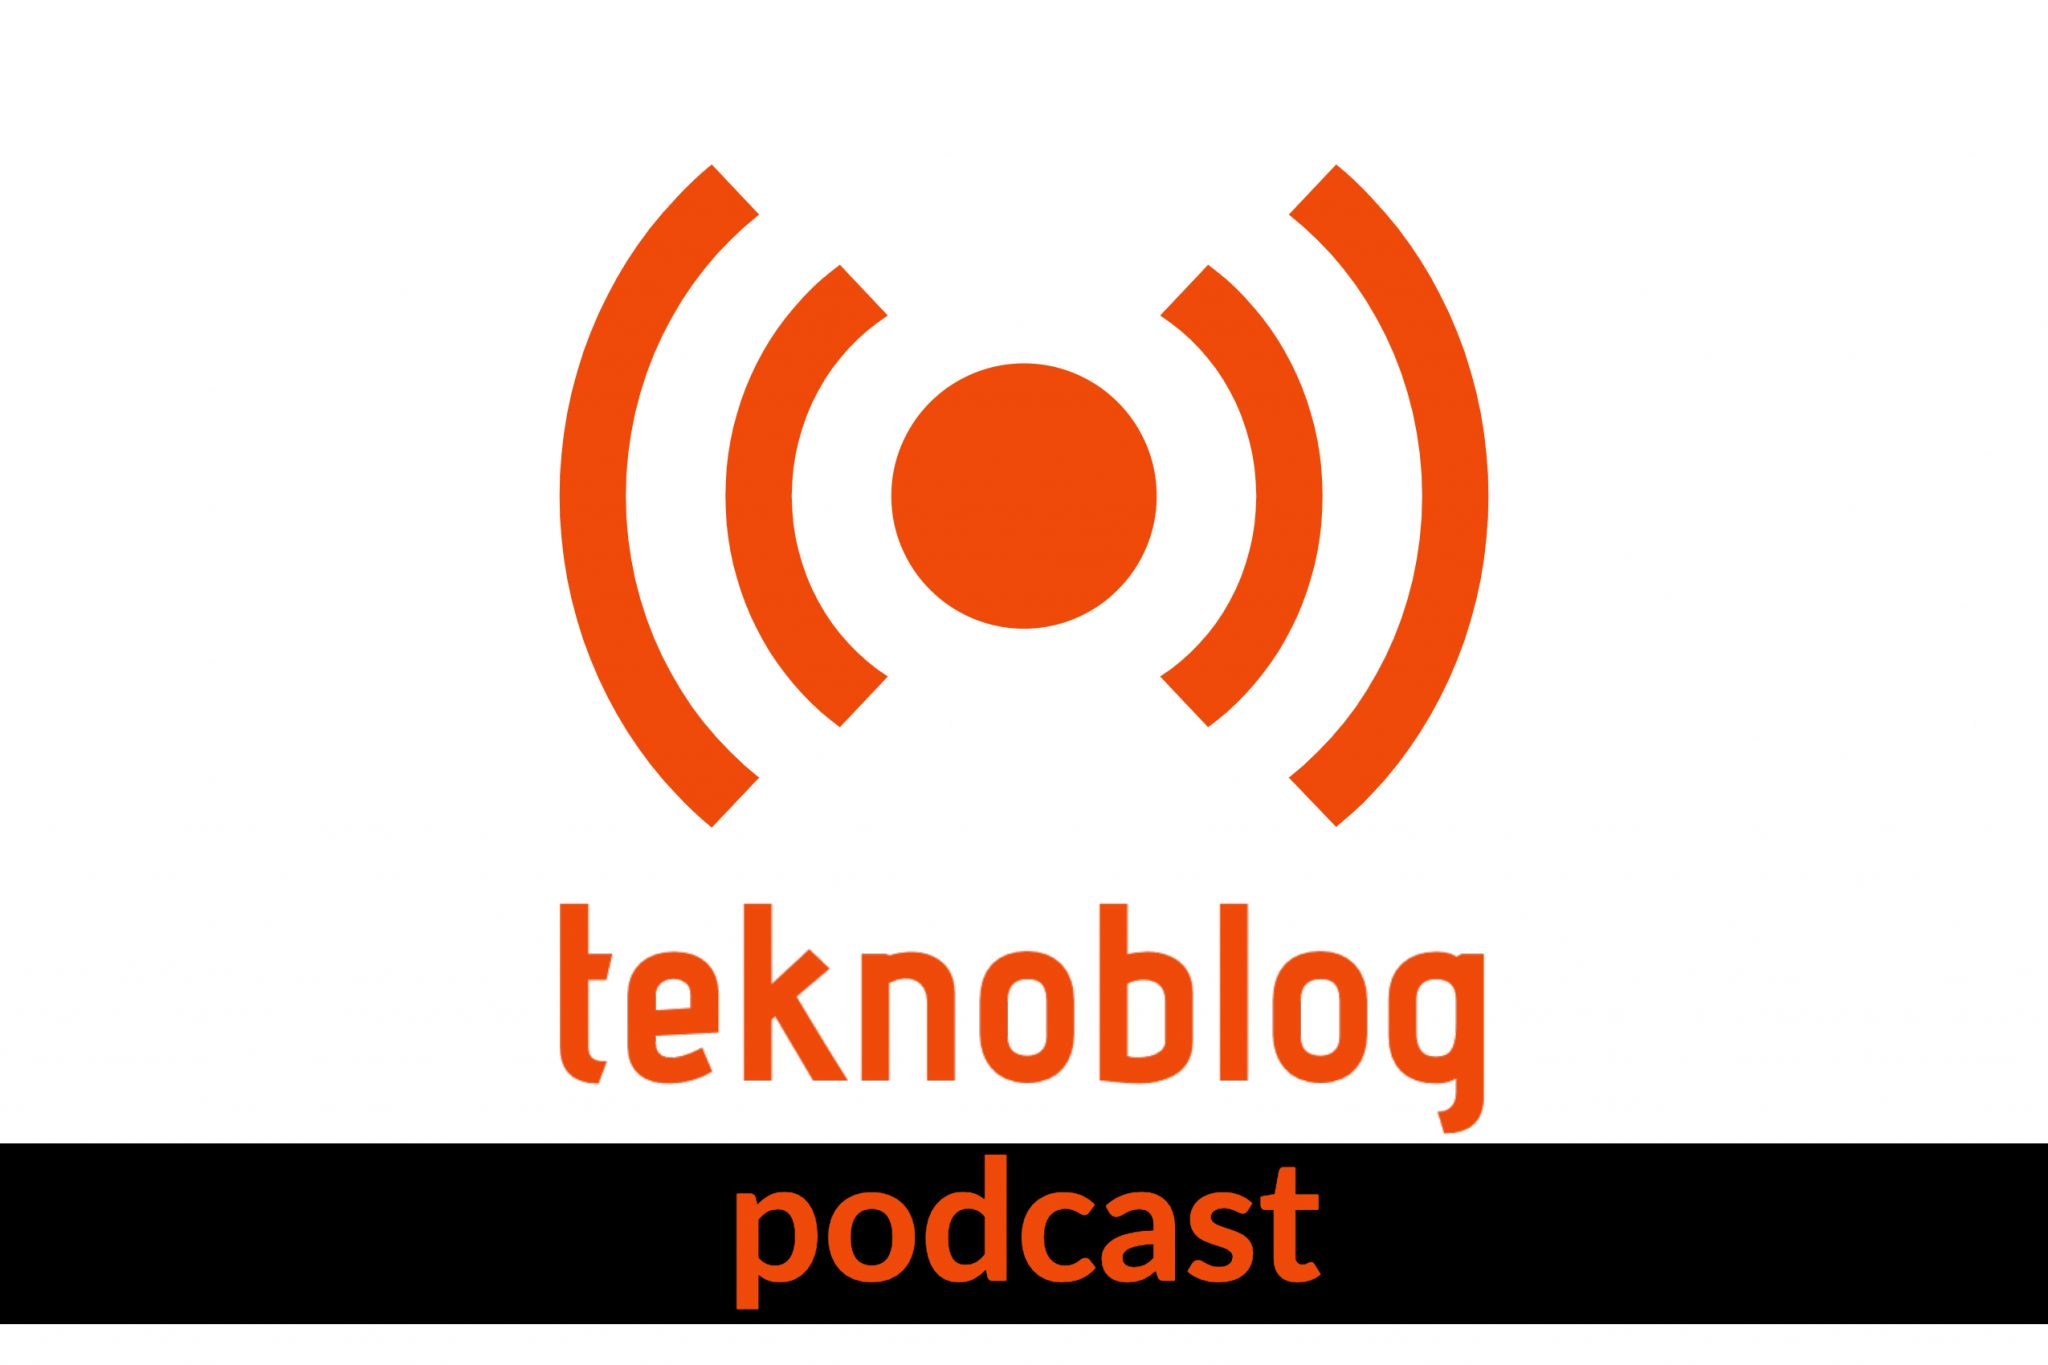 teknoblog podcast